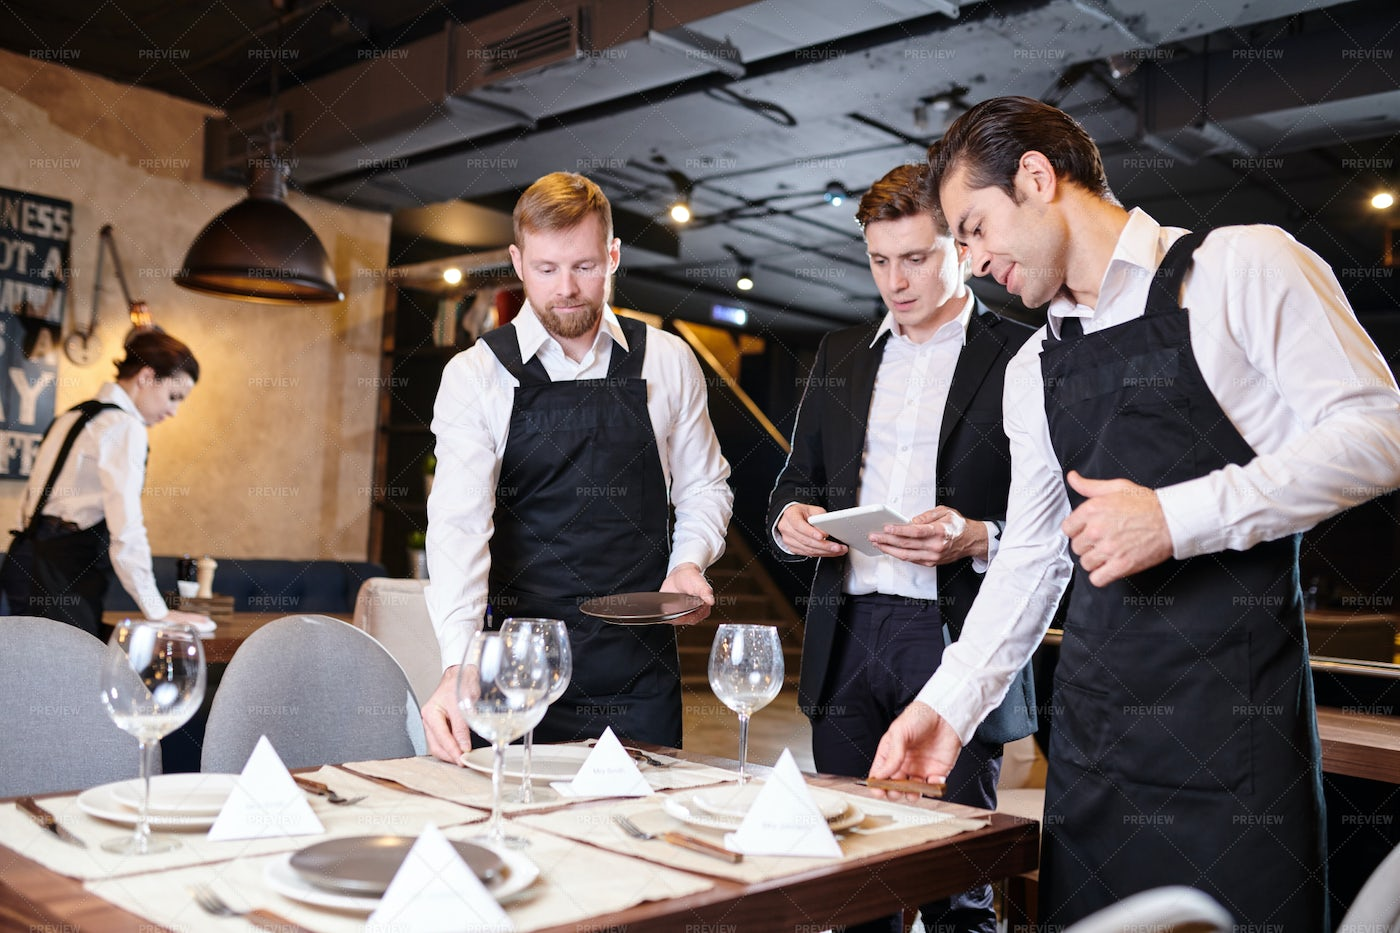 Serving Tables For Banquet: Stock Photos